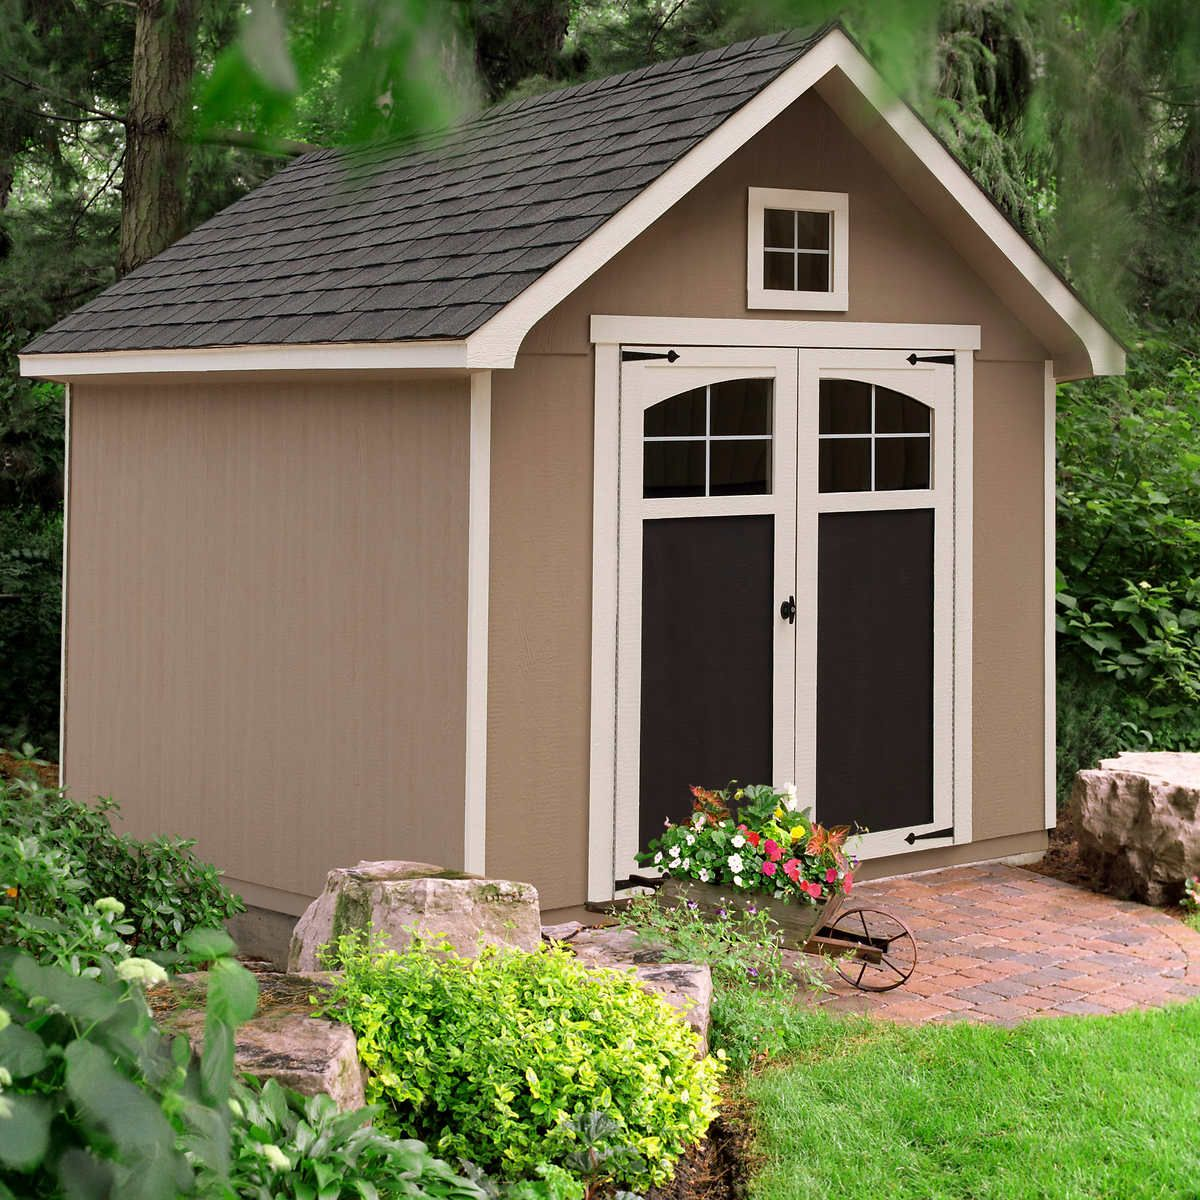 Pin By Dottie Riden On Sheds In 2020 Backyard Sheds Outdoor Sheds Wood Storage Sheds